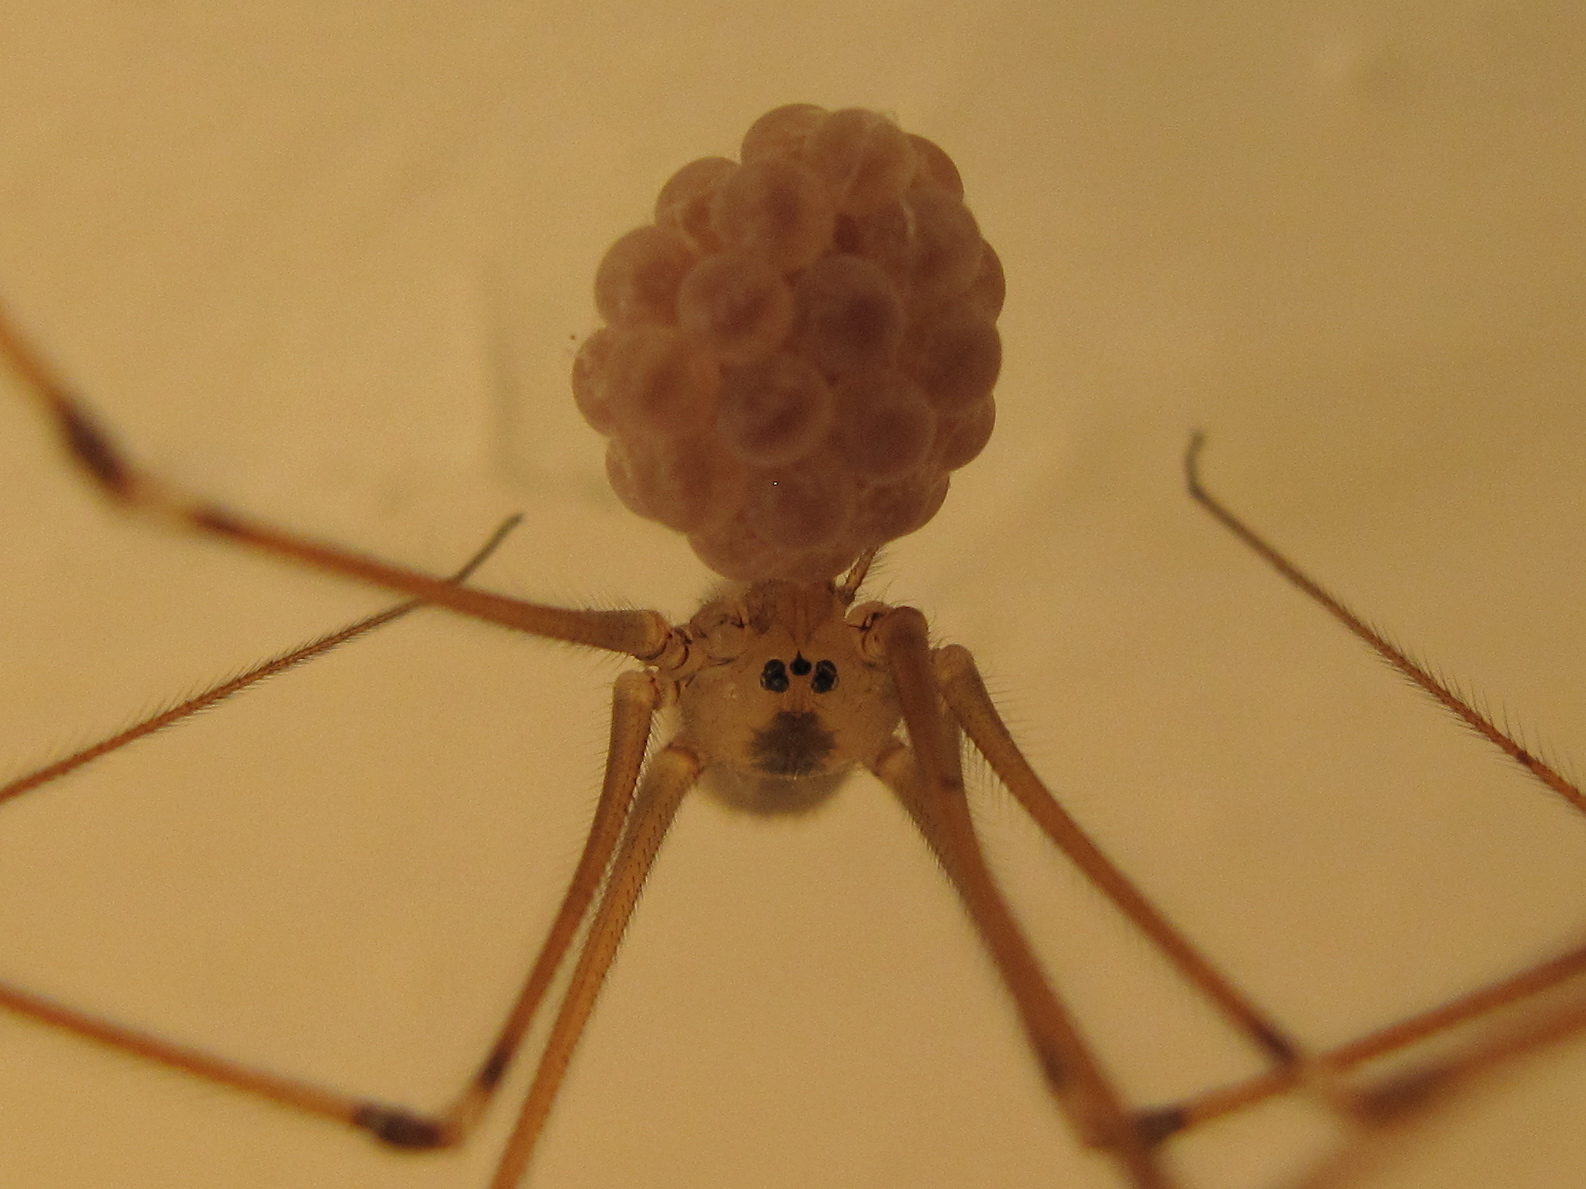 American house spider egg sac - photo#3